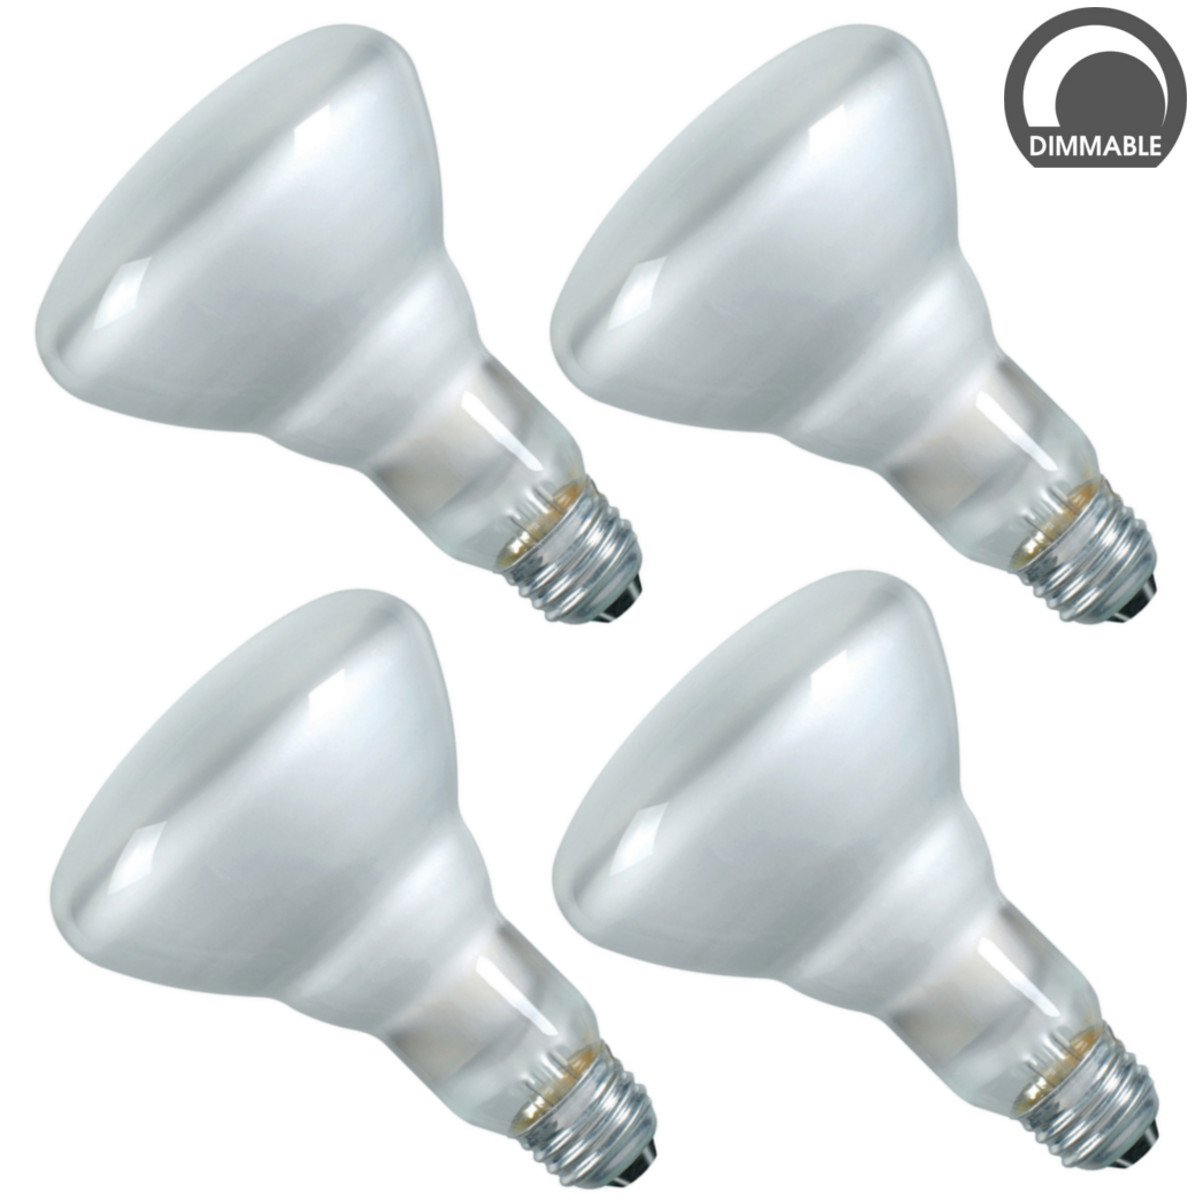 Luxrite LR20880 (4-Pack) 65-Watt BR30 Incandescent Flood Light Bulb, Dimmable, Frosted Finish, 500 Lumens, E26 Base